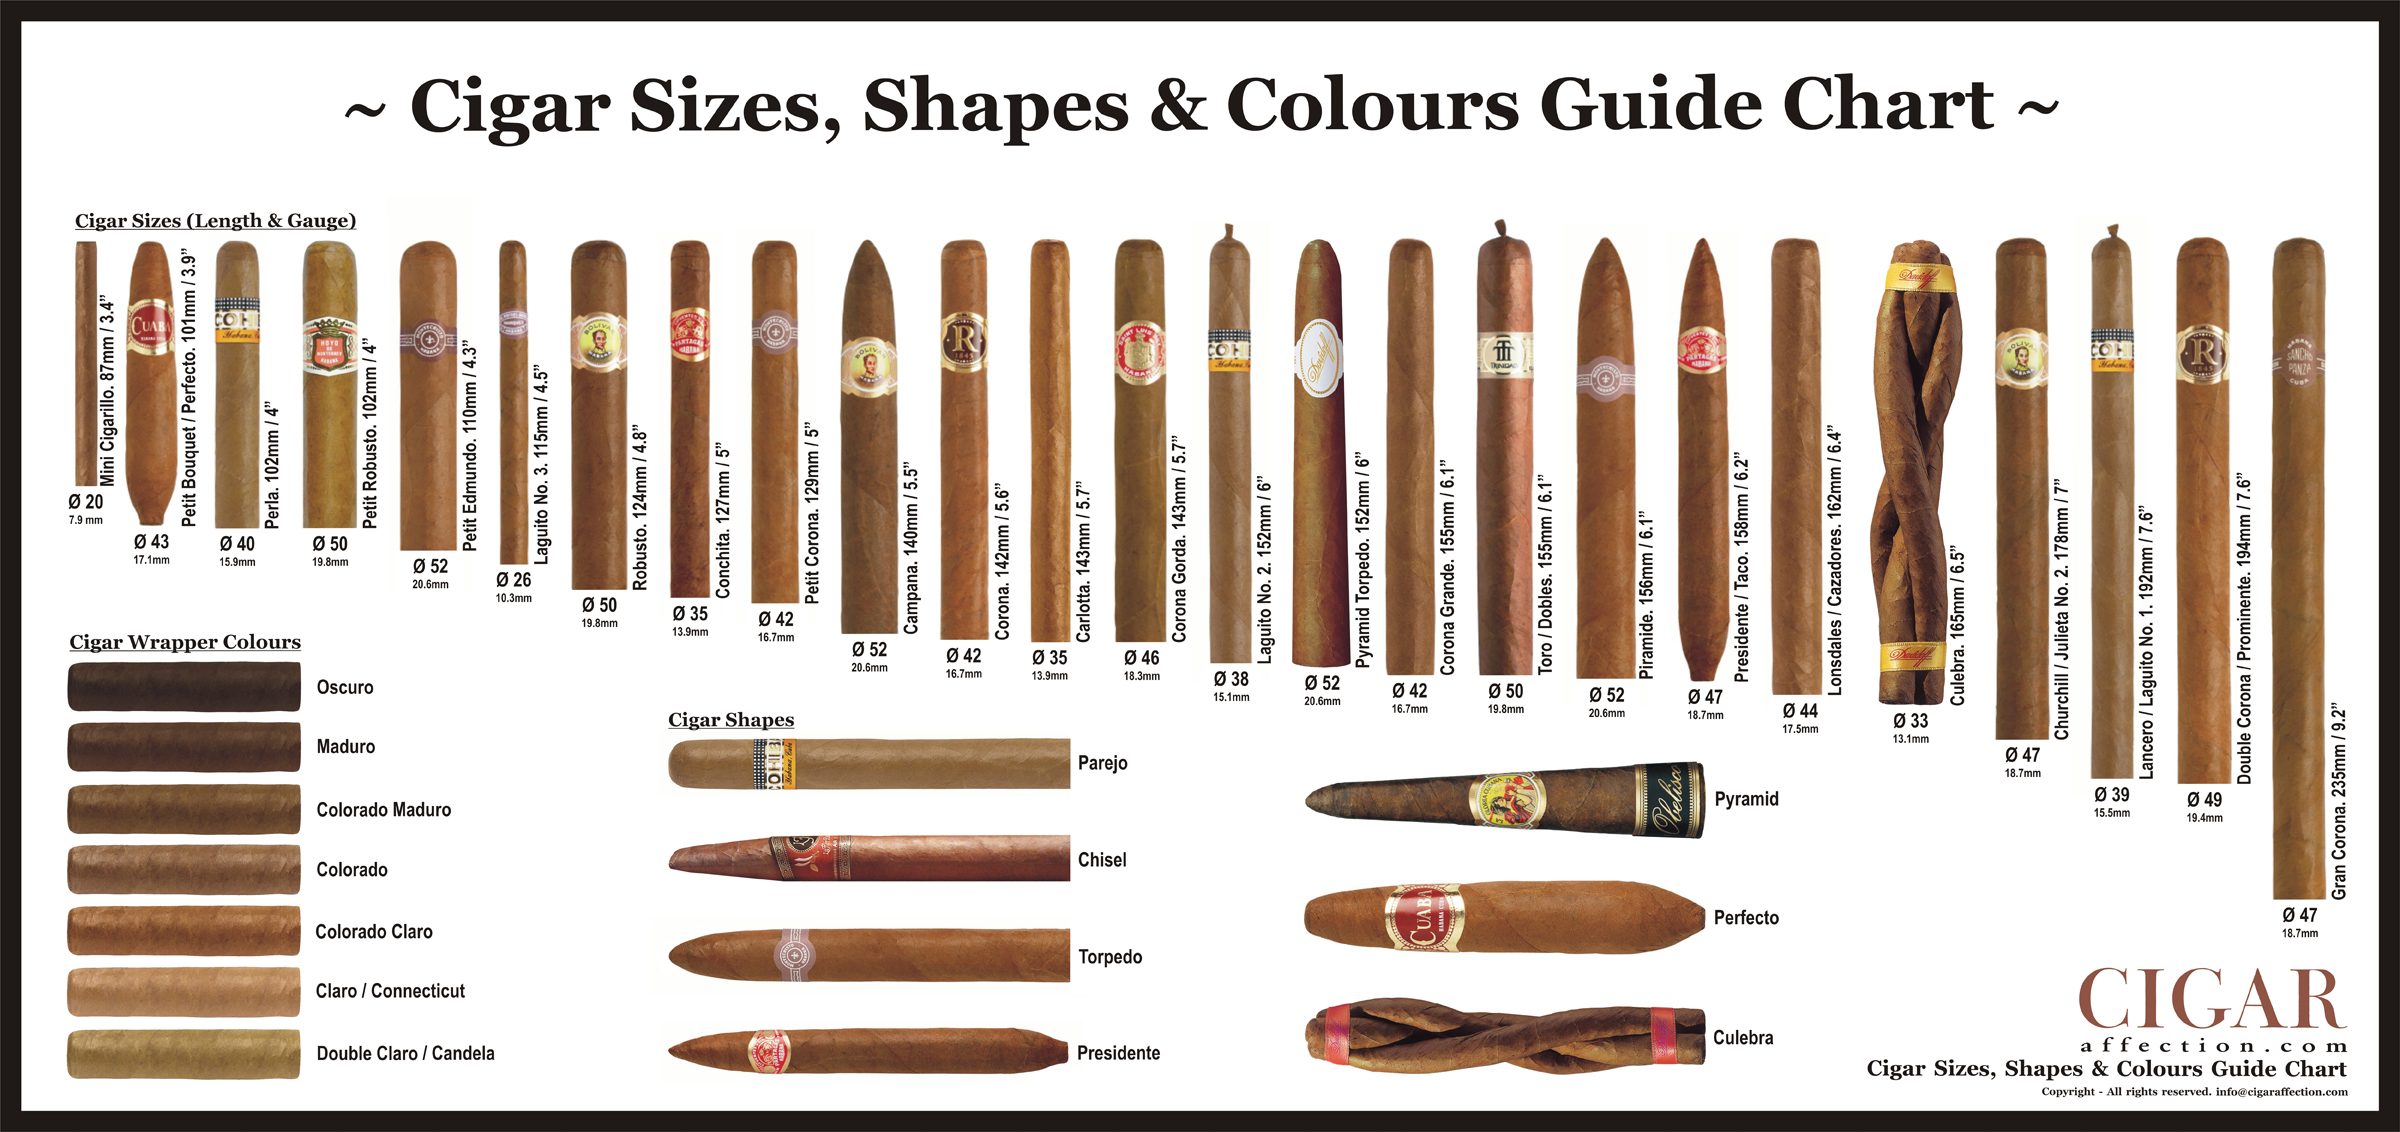 Cigar sizes shapes and ring gauge guide chart cigar affection click here to geenschuldenfo Gallery